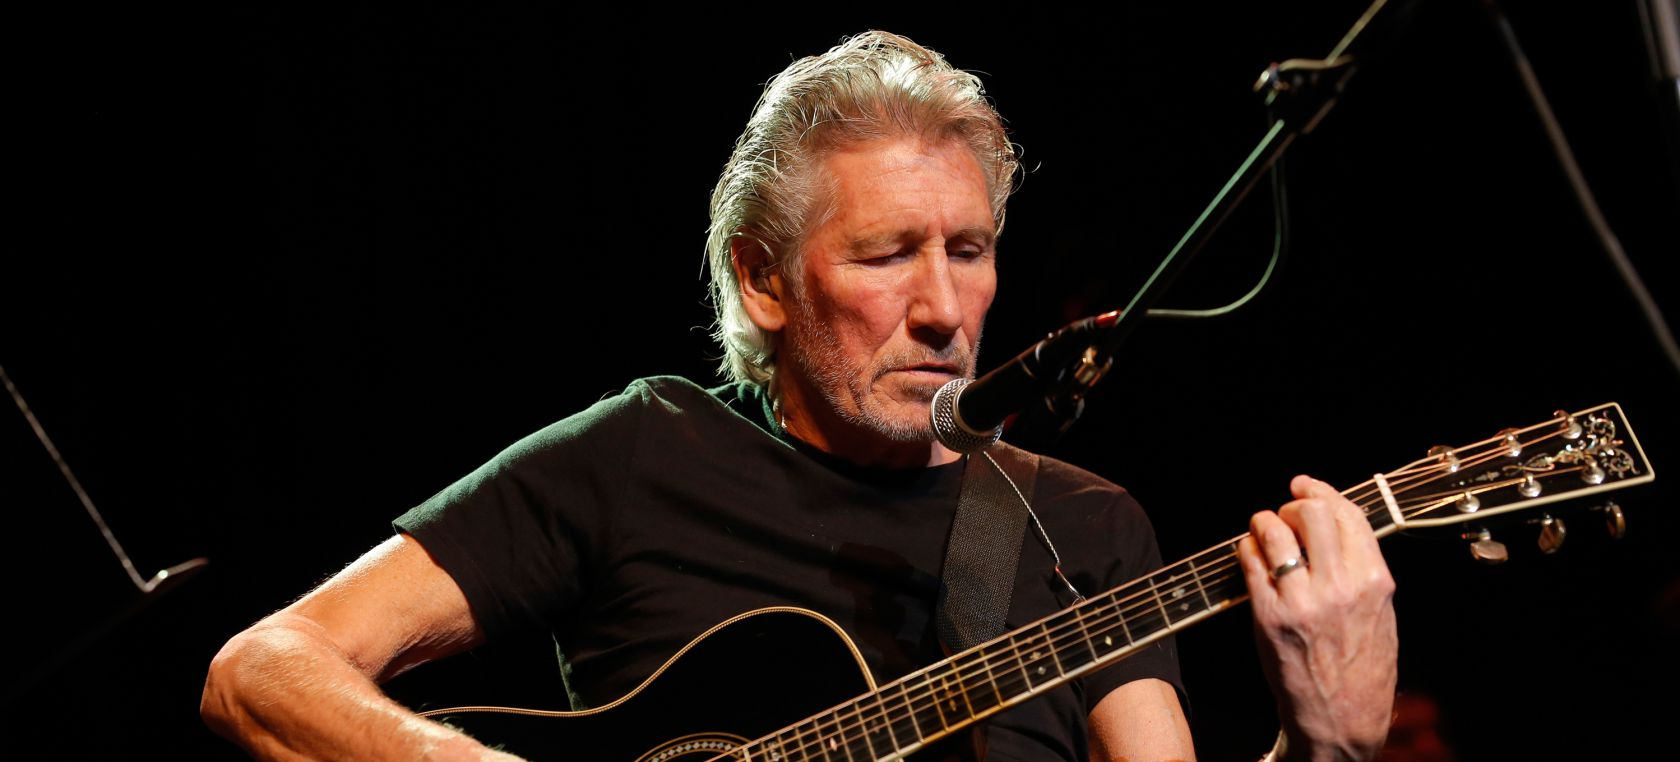 Roger Waters comparte un vídeo interpretando 'The Gunner's Dream' de Pink Floyd